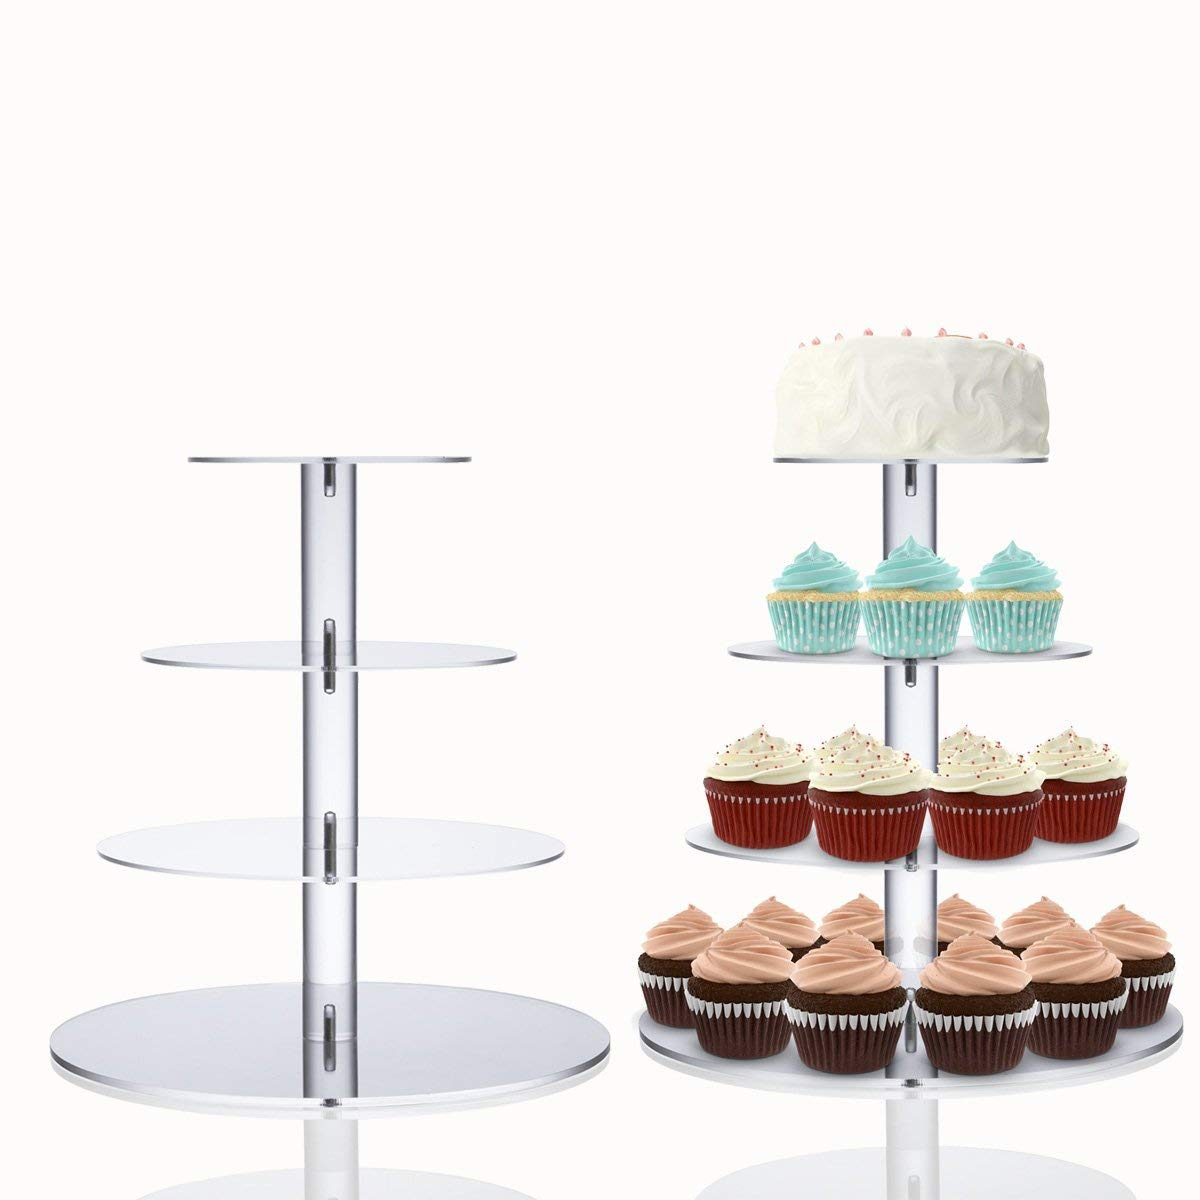 Cupcake Stand, 3-Tier Cake Cupcake Stand Square Cake Holder Acrylic Dessert Display Cupcake displays for Weddings Birthday Party